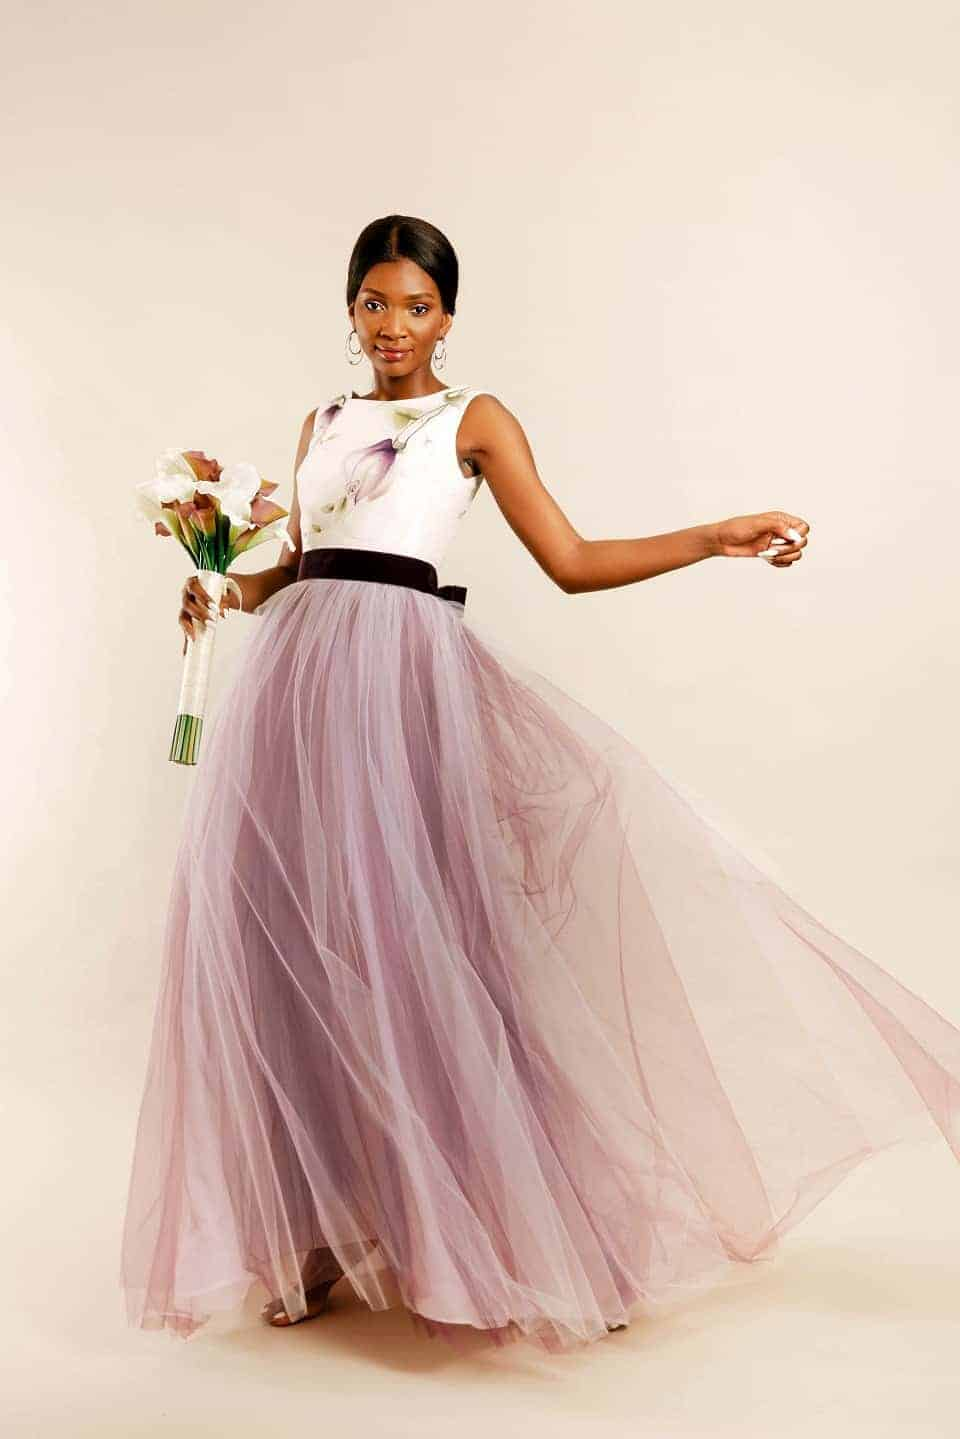 Vintage plum hand painted bridal gown with model spinning around